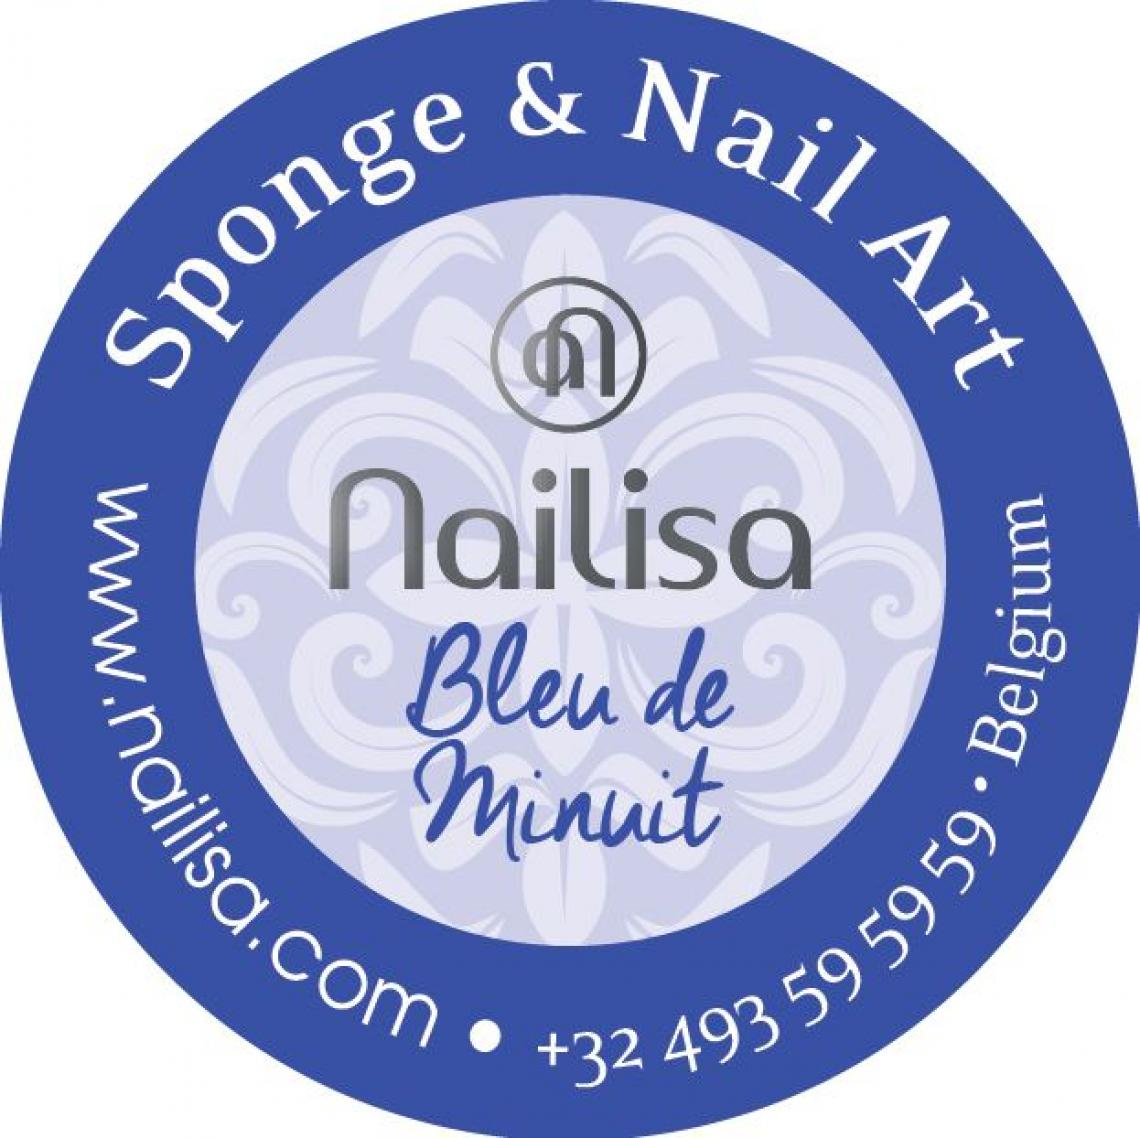 Painting Gel Sponge & Nail Art - Bleu de minuit 5ml - photo 8